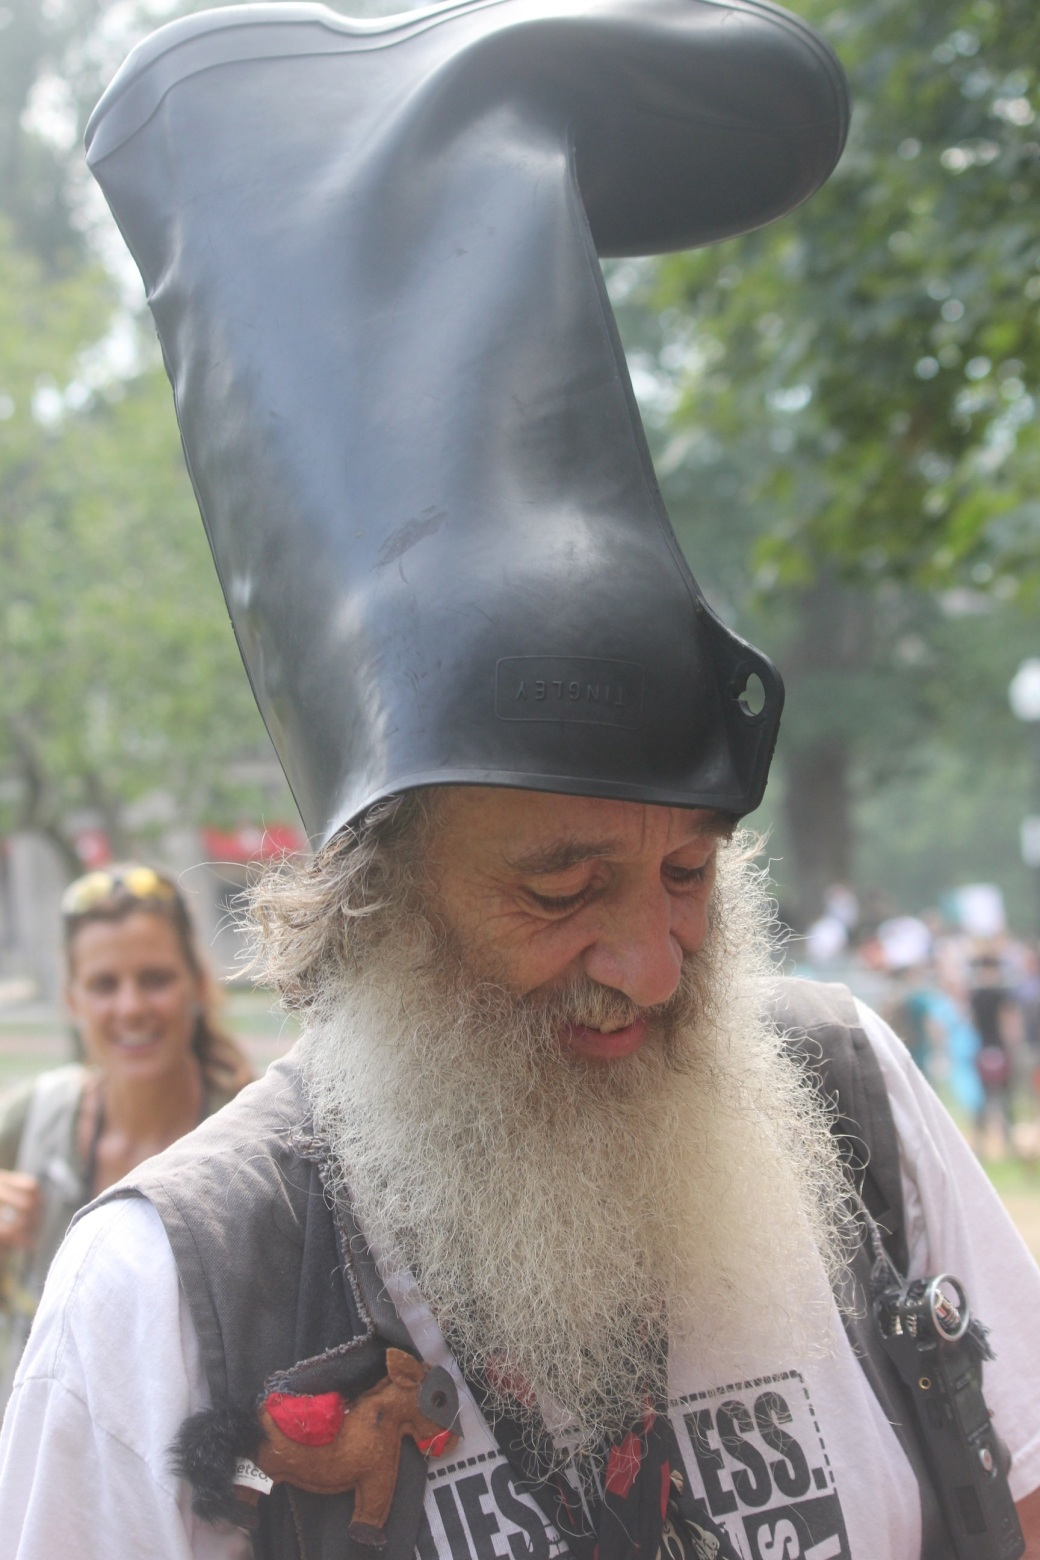 boston boston common anti free speech rally protest august 19 2017 vermin supreme 2